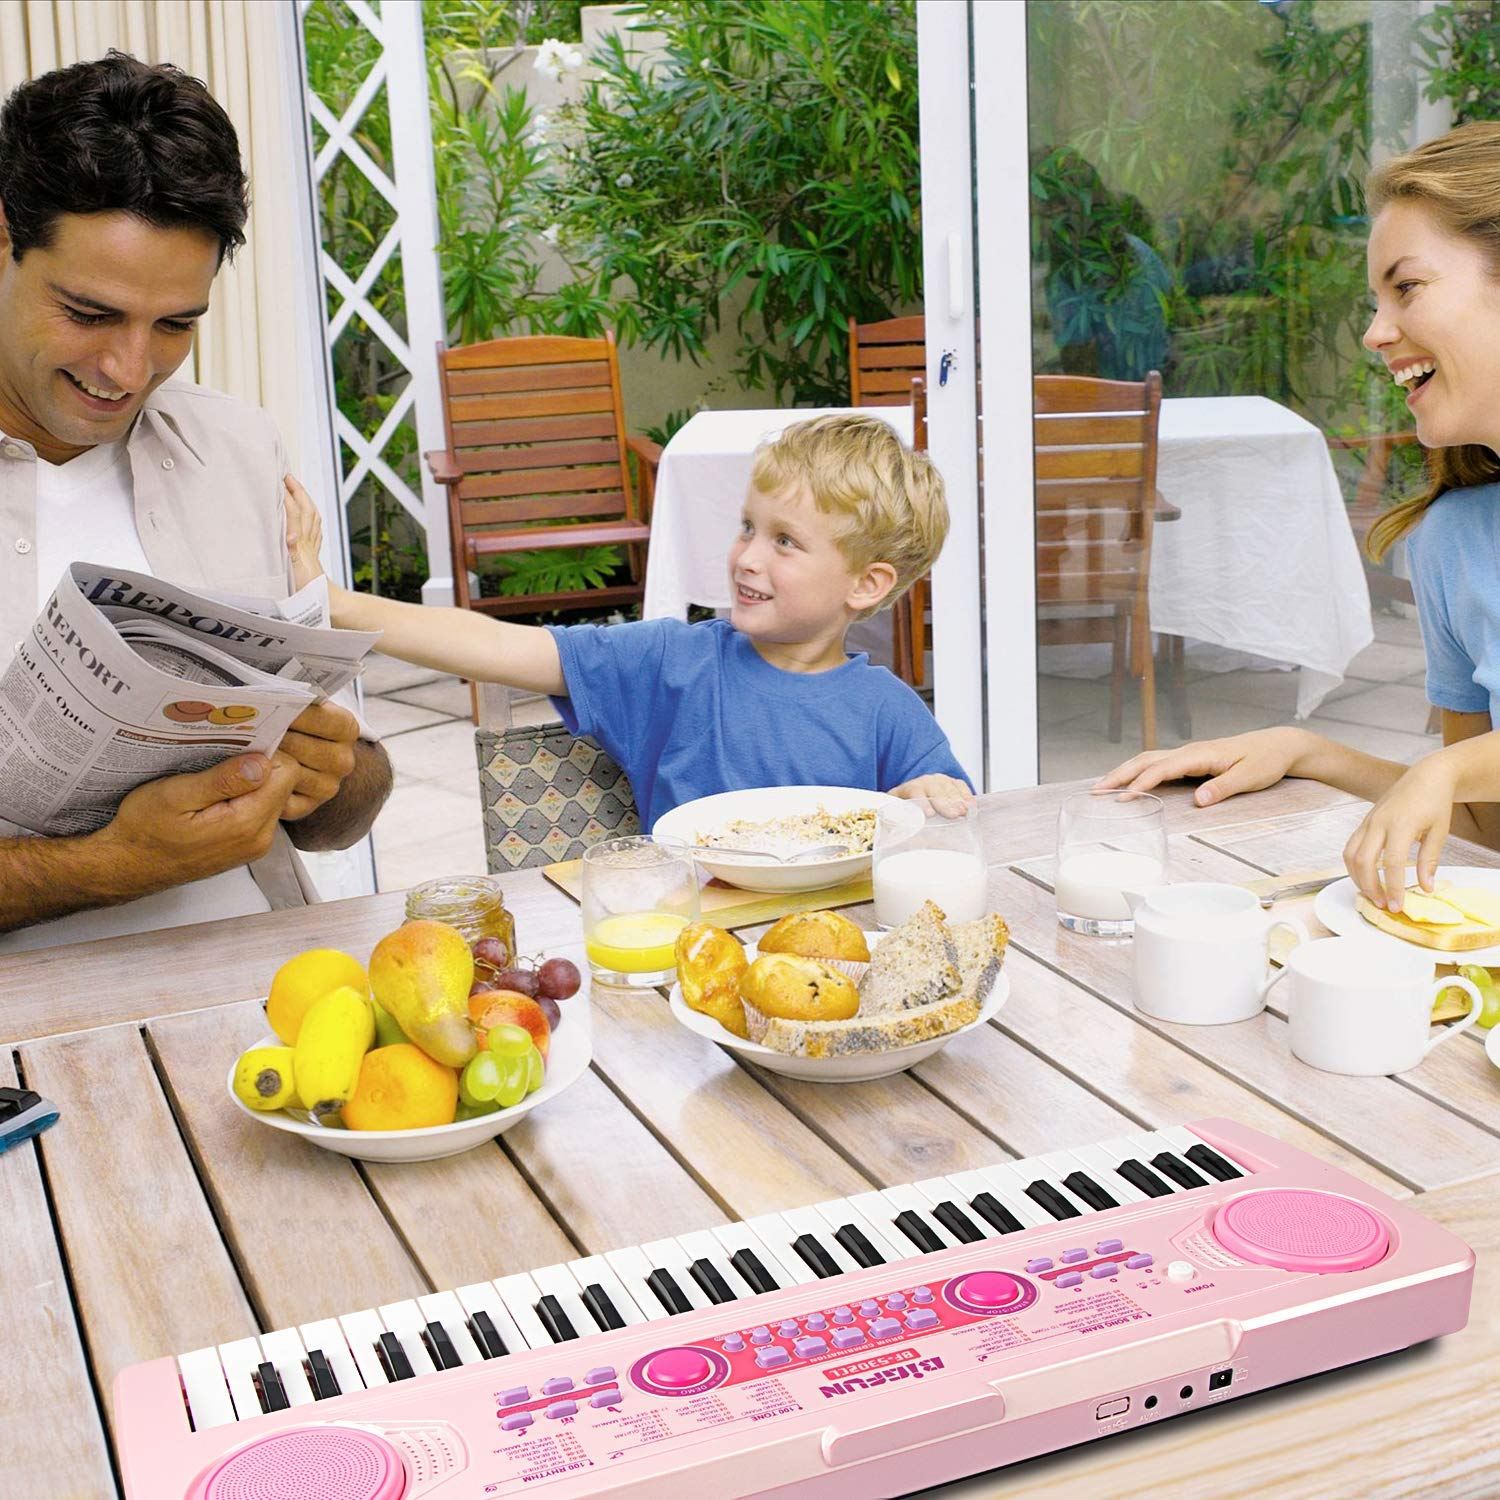 SAOCOOL Piano Keyboard, 49 Keys Multi-Function Charging Electronic Kids Piano Keyboard Music Educational Toy for Children Over 3 Years Old (Pink) by SAOCOOL (Image #7)